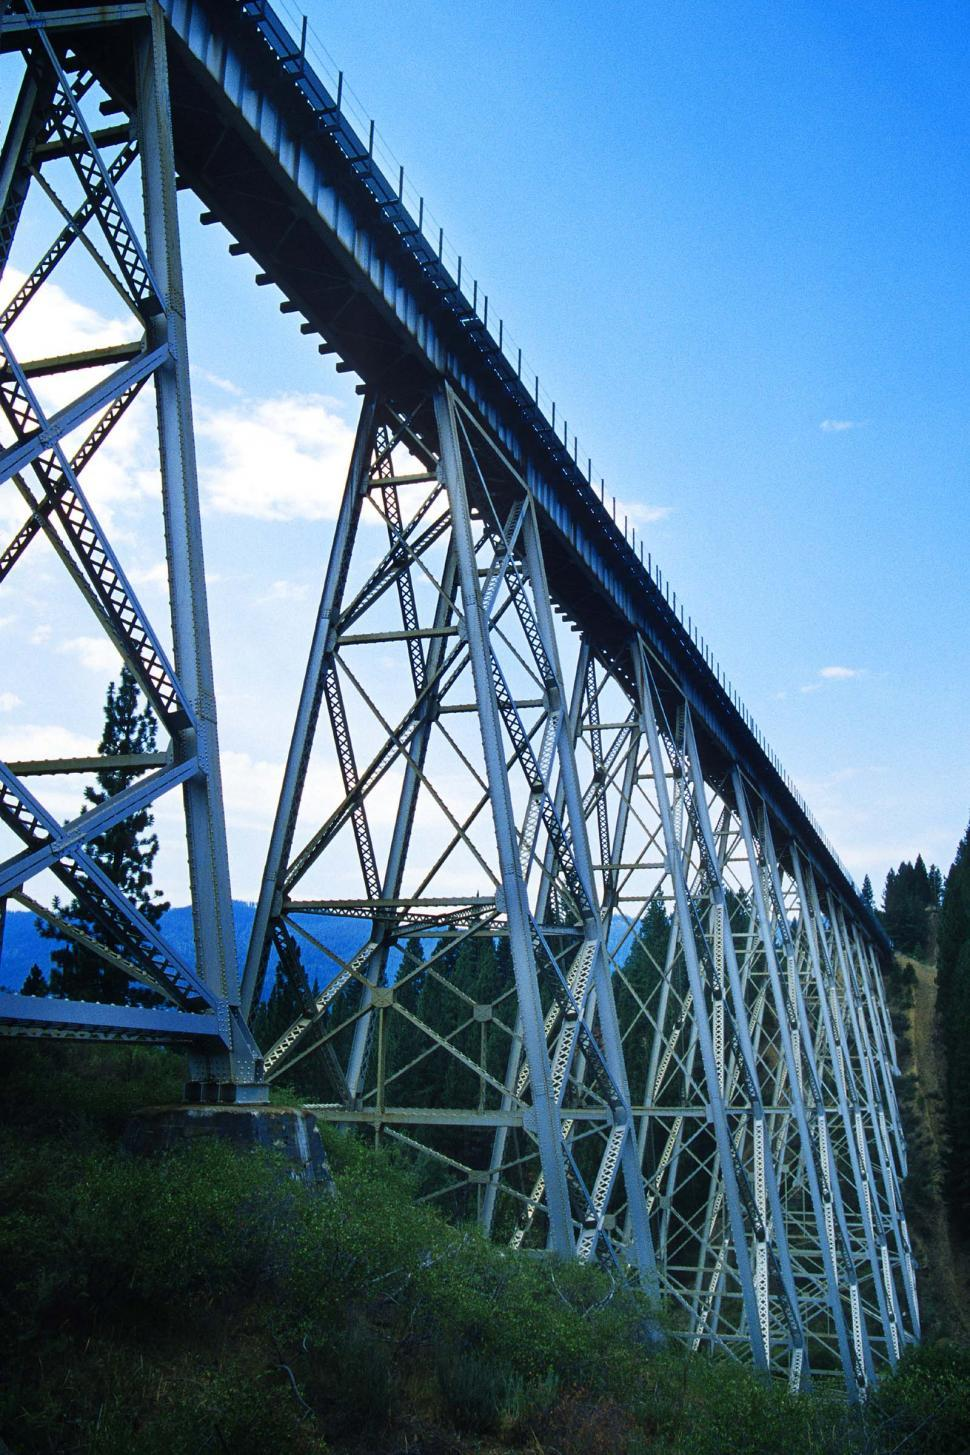 Download Free Stock HD Photo of Large trestle spanning gorge Online